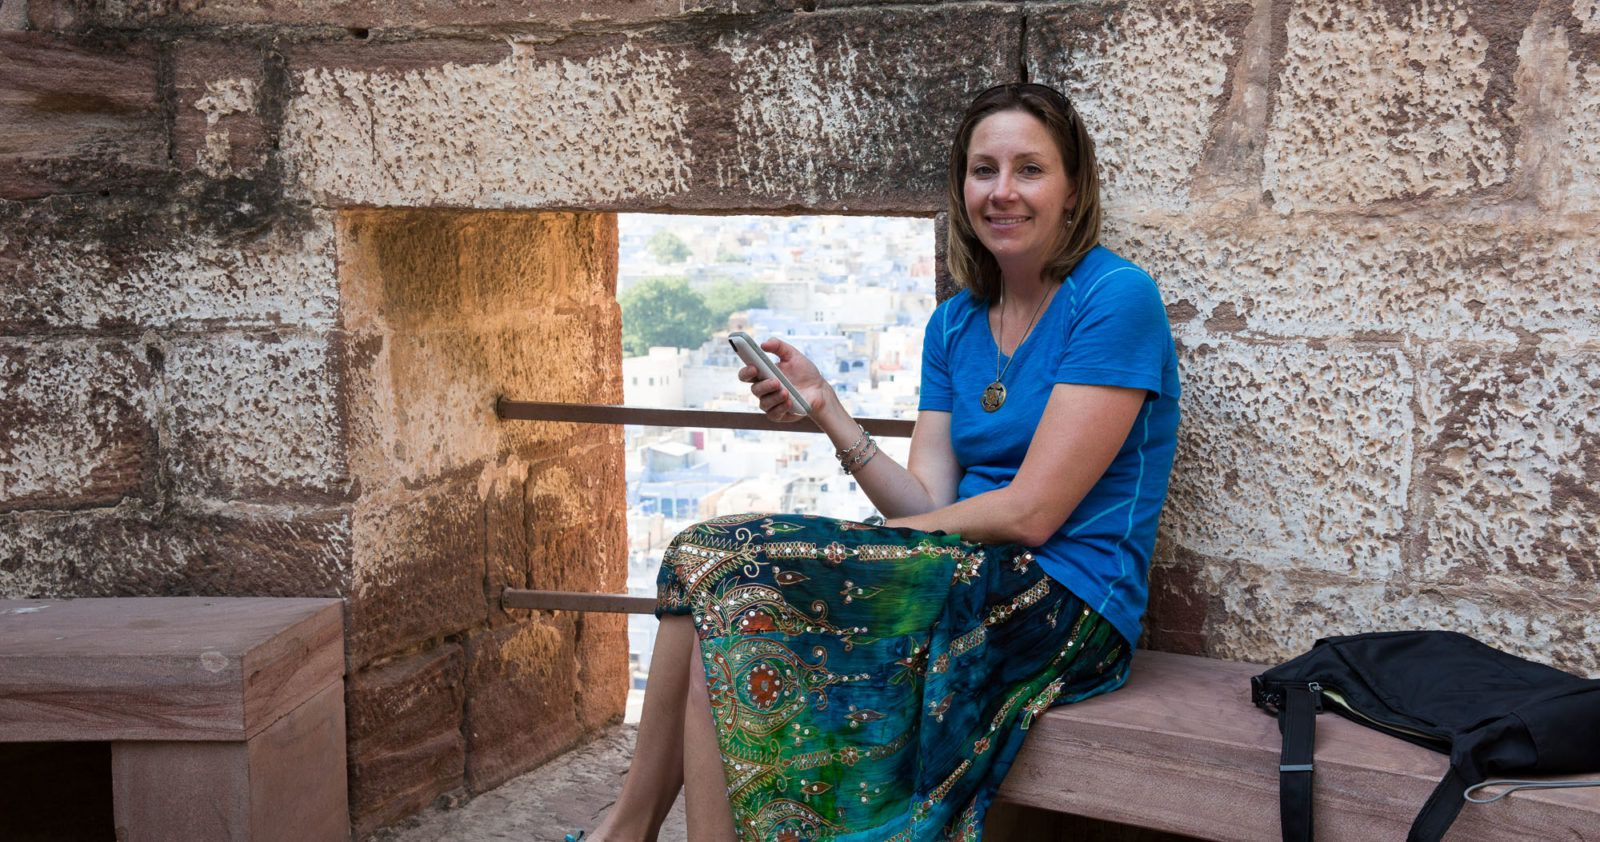 Julie in India with Dengue Fever